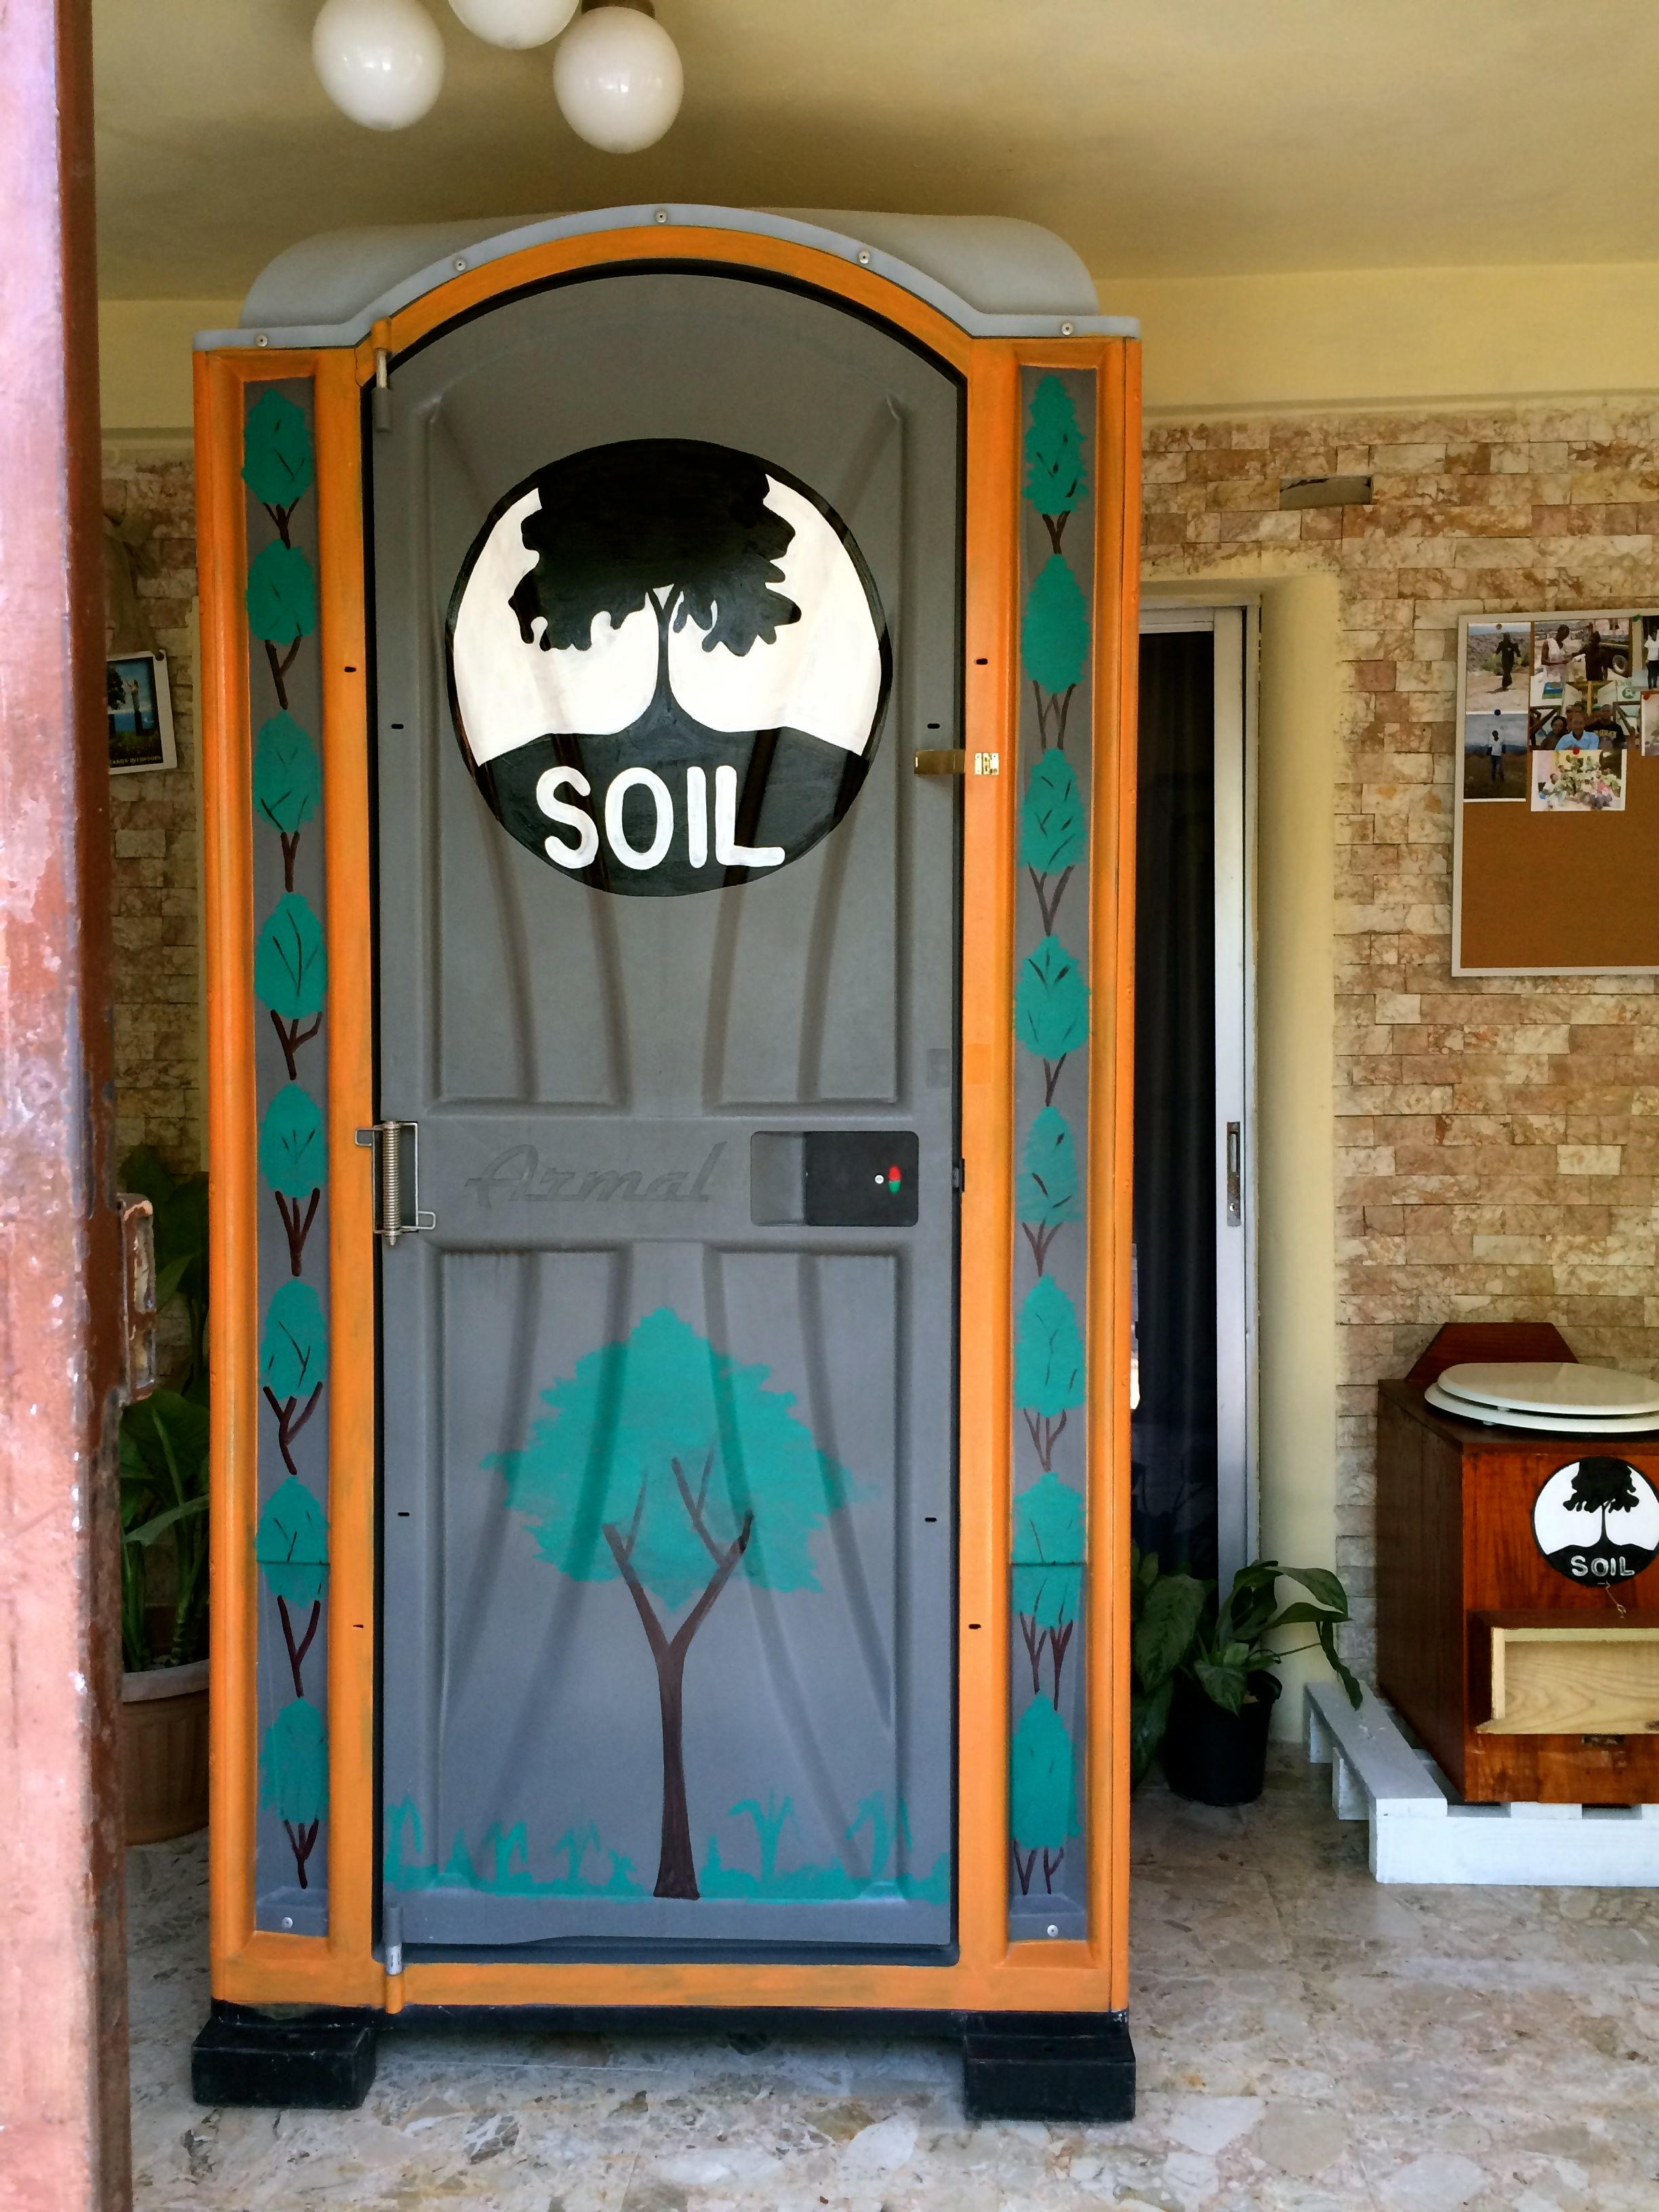 This beautiful SOIL EkoMobil toilet was formerly a Port-o-Potty, but now it is a dry EcoSan toilet!